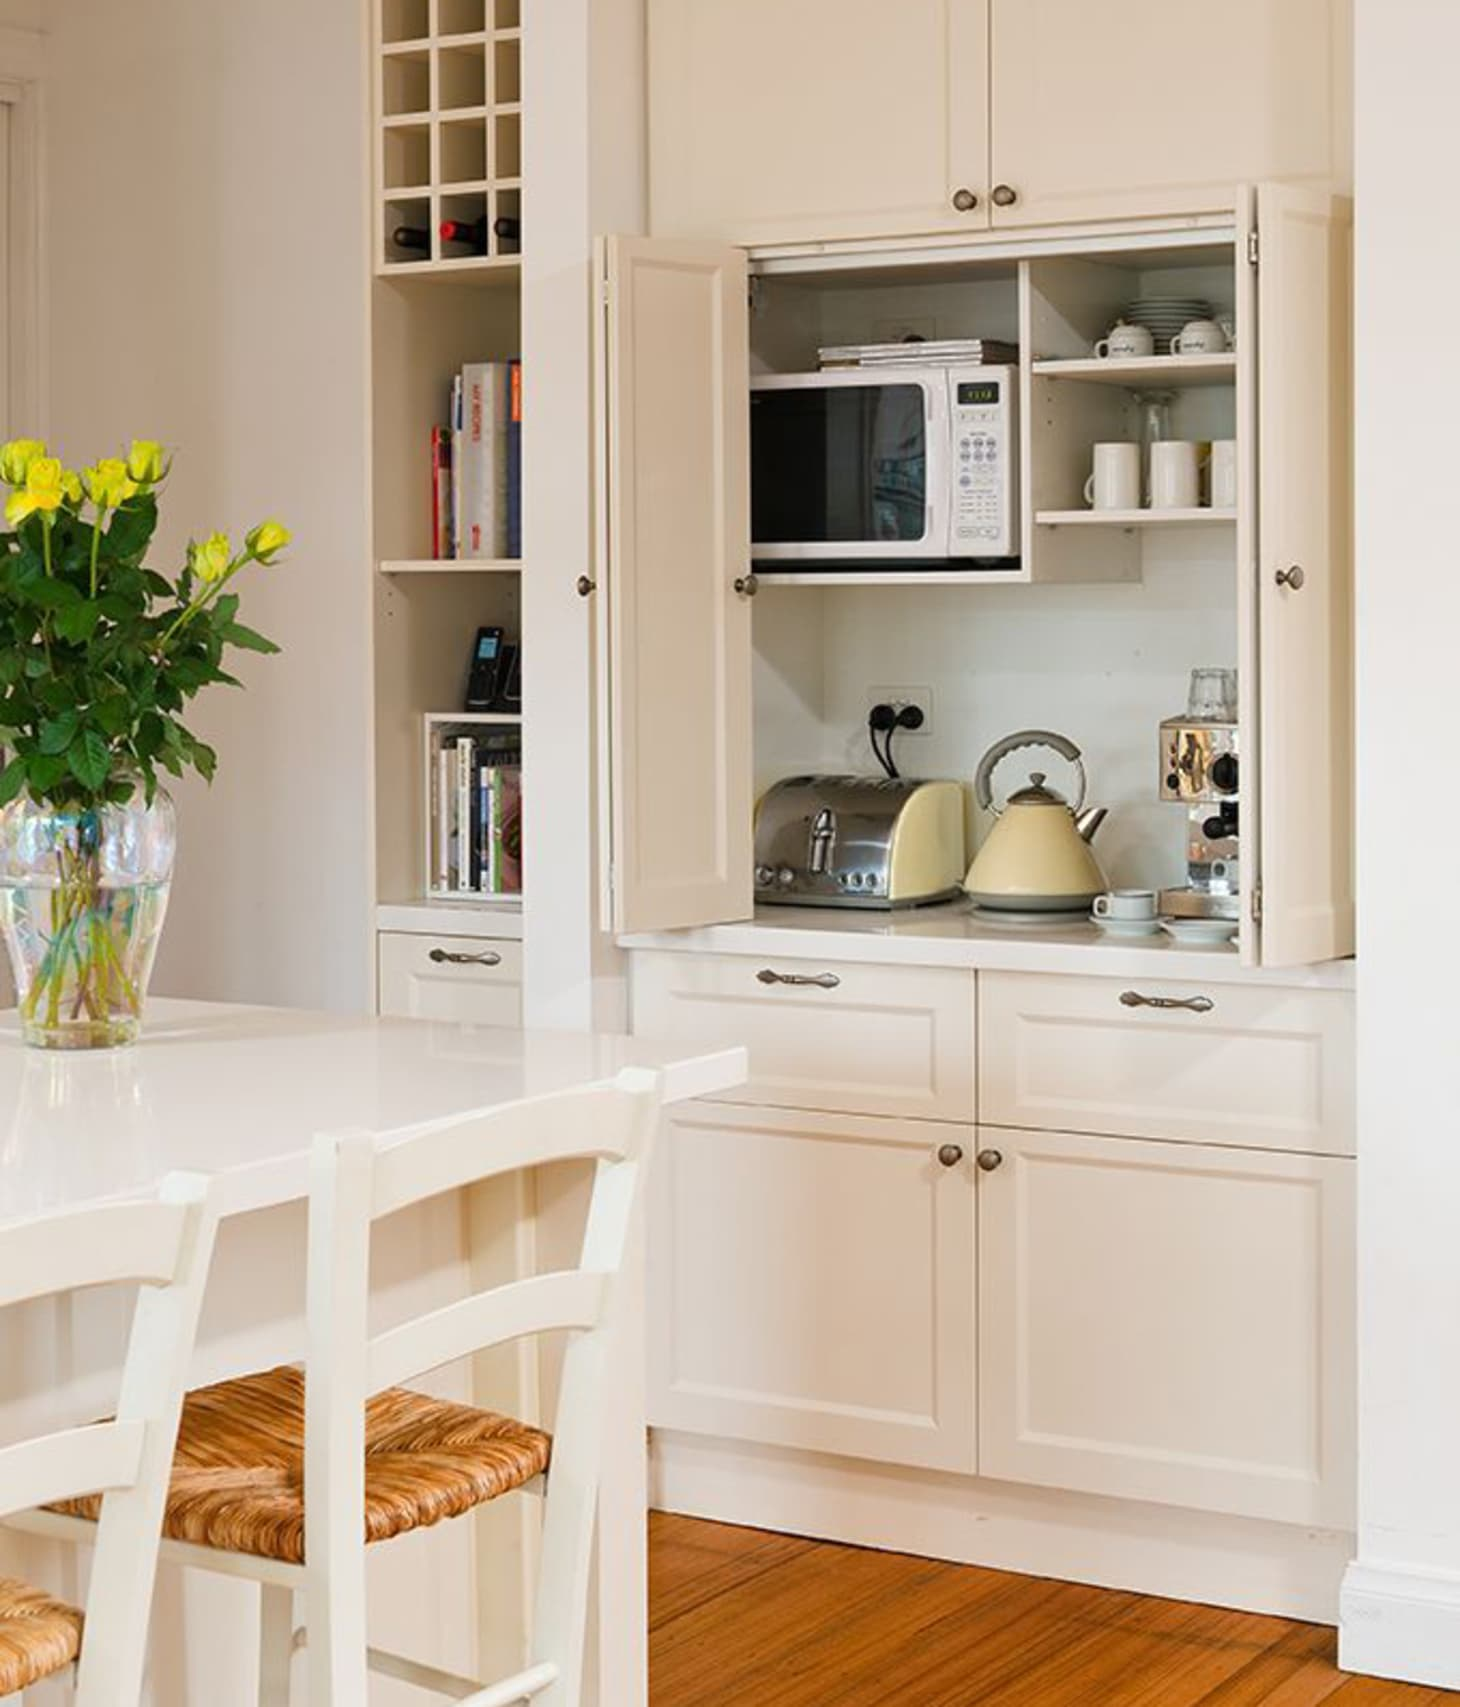 Kitchen Cabinet Ideas For Microwave: Microwaves In The Kitchen: Hidden Storage Solutions